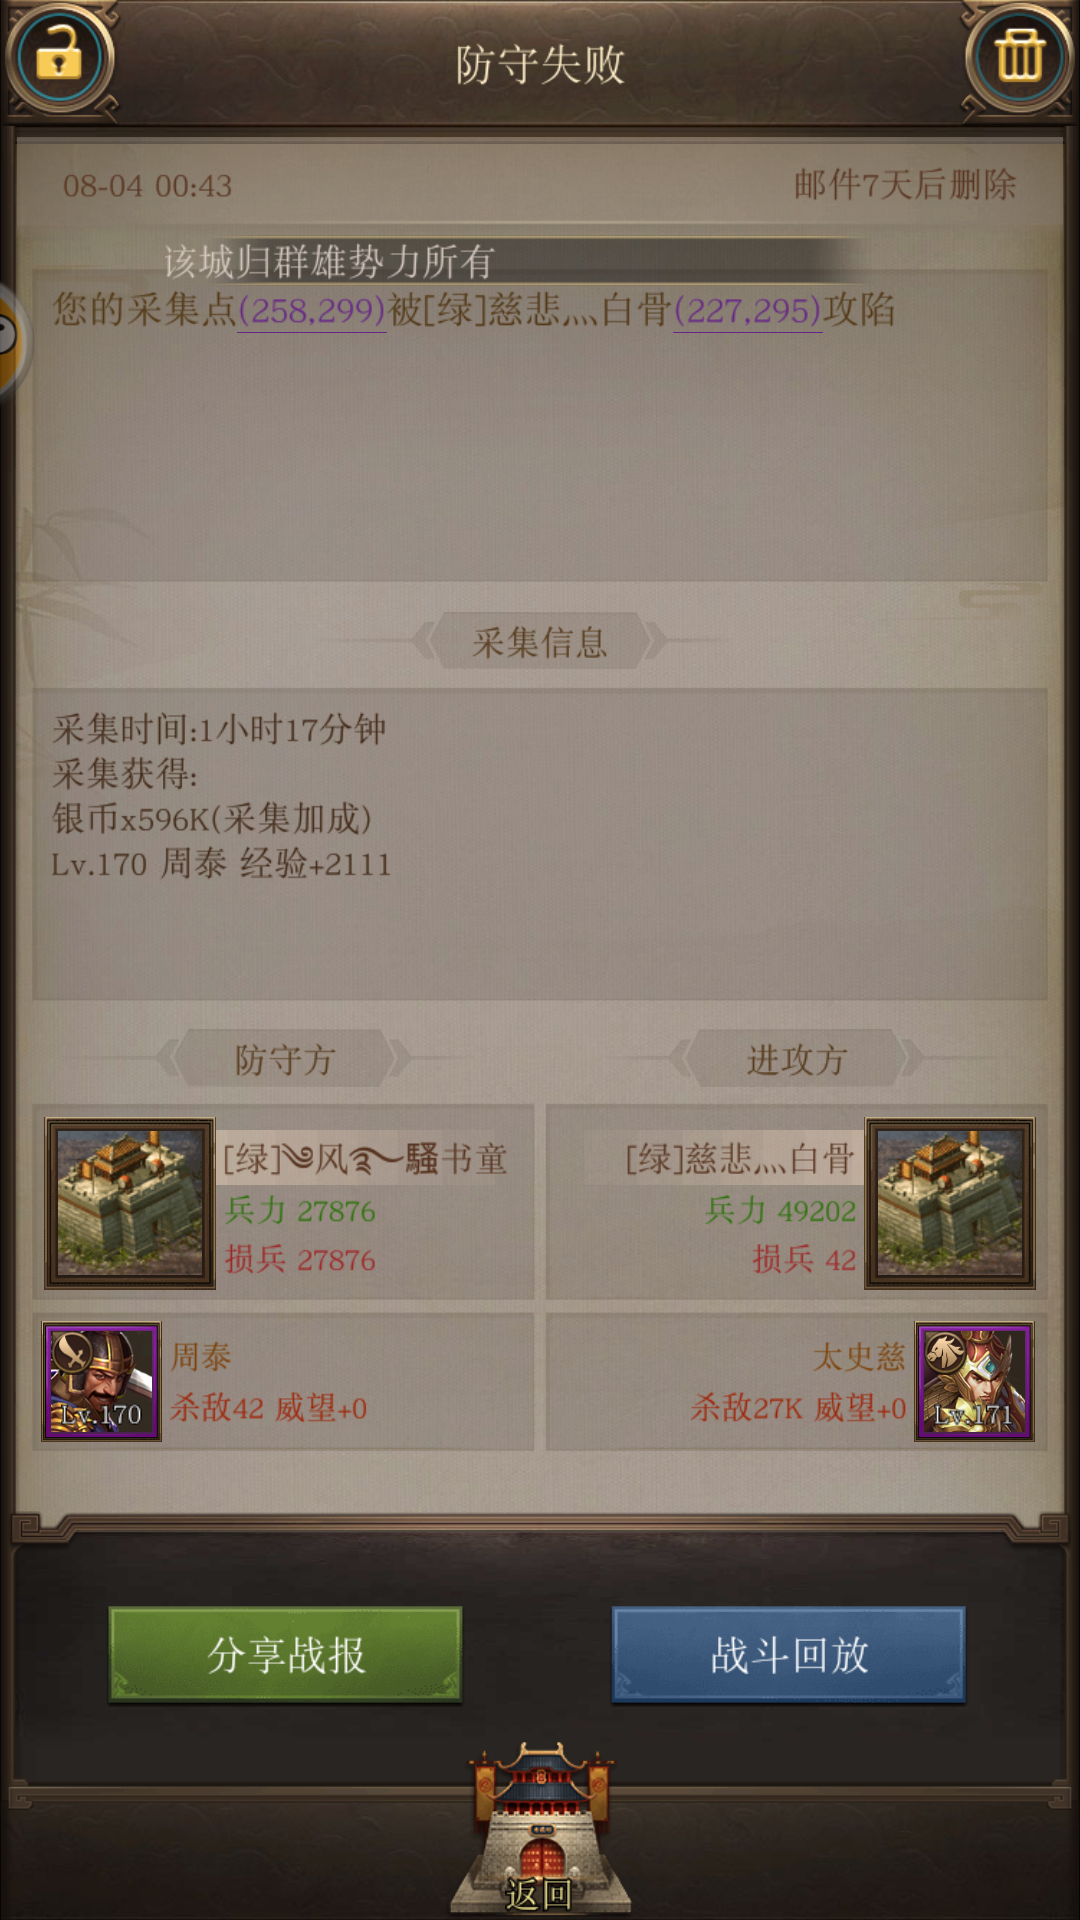 Screenshot_2019-08-04-01-11-23-139_com.juedigame.zhhzz.shoumeng.png